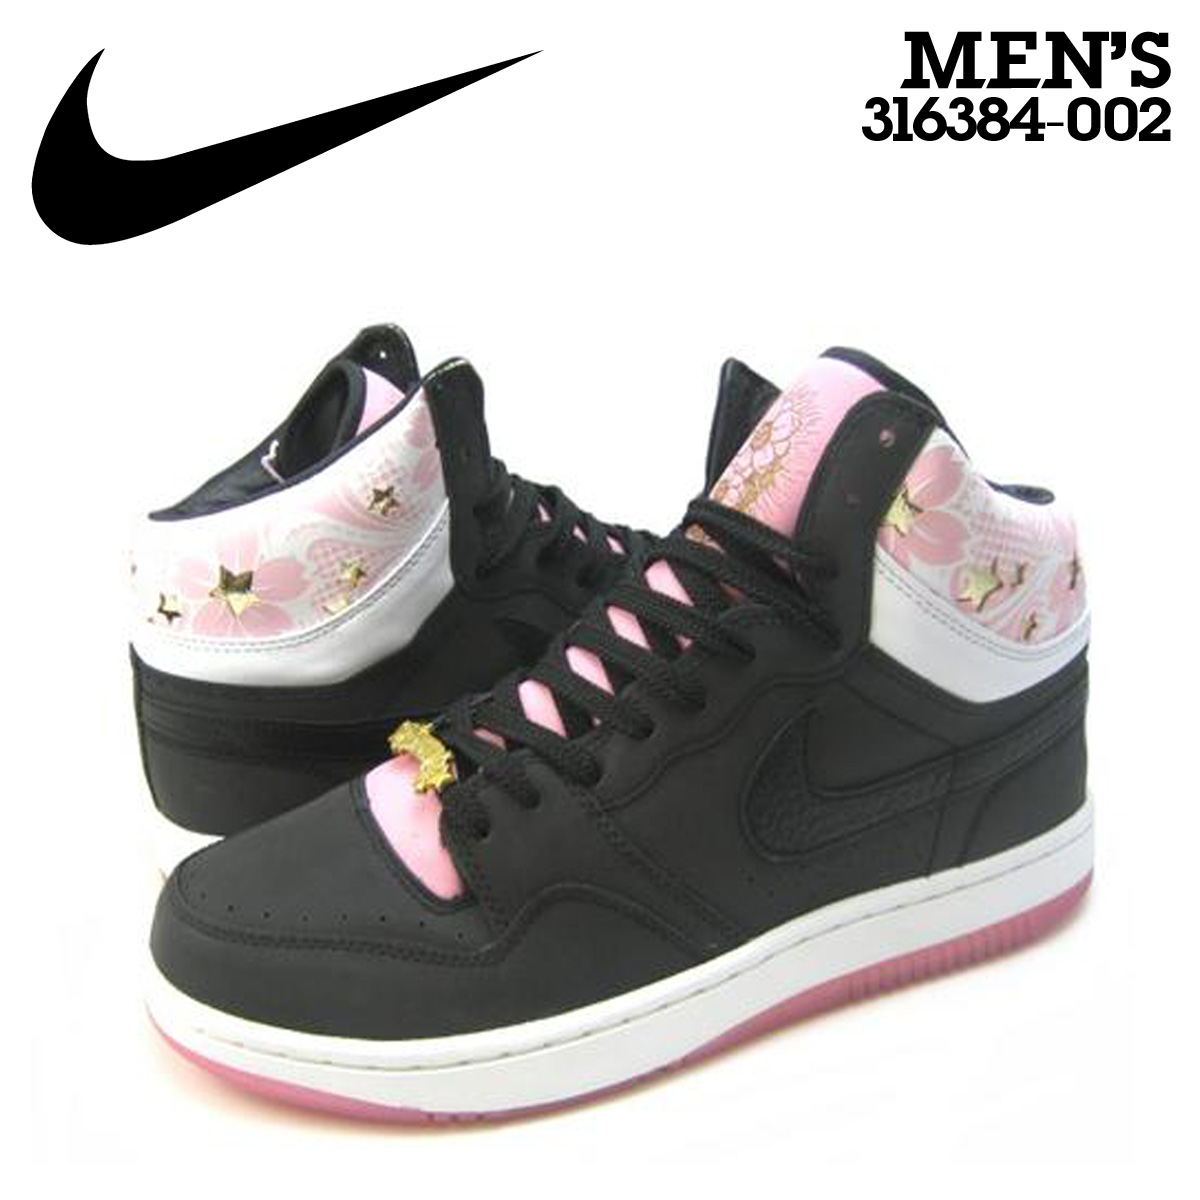 Nike NIKE Court force sneakers COURT FORCE HI PREMIUM SAKURA Court force Hi  premium cherry cherry 316384-002 black mens